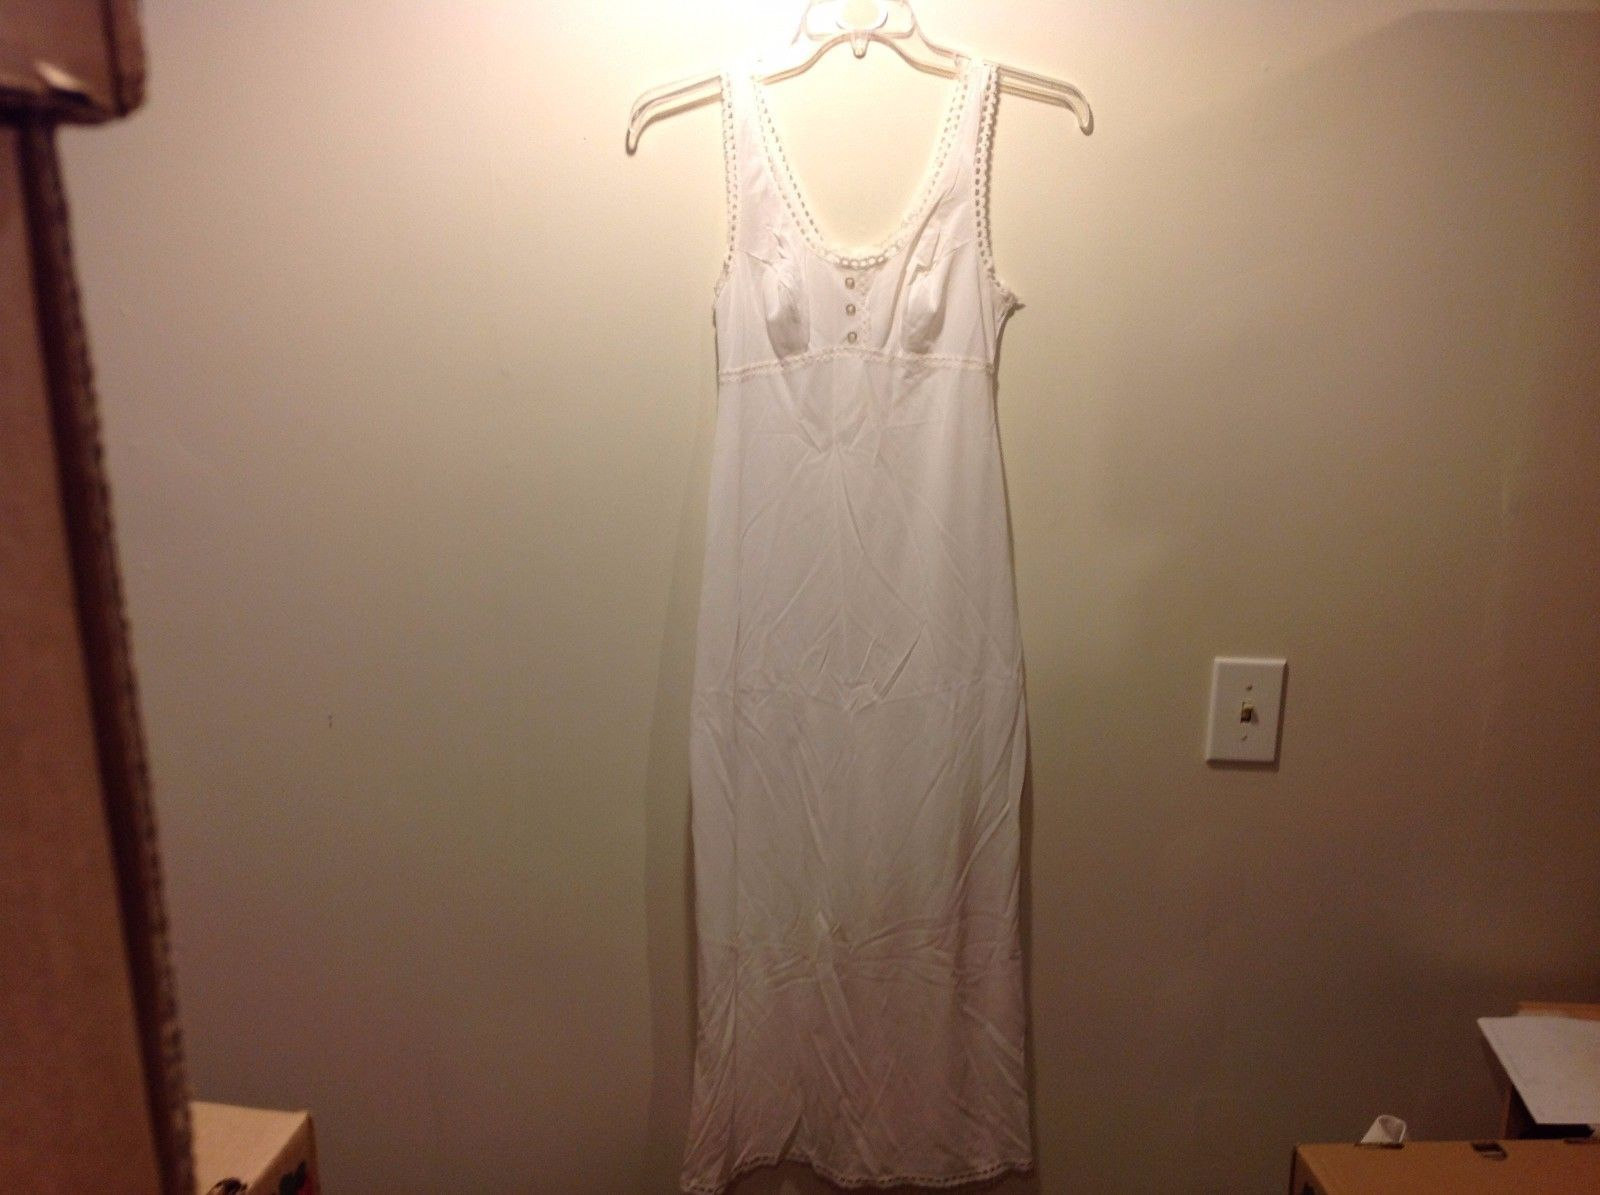 Formfit Rogers White Semi Sheer Sleeveless Nightgown w Lace Fringe Sz 10-12